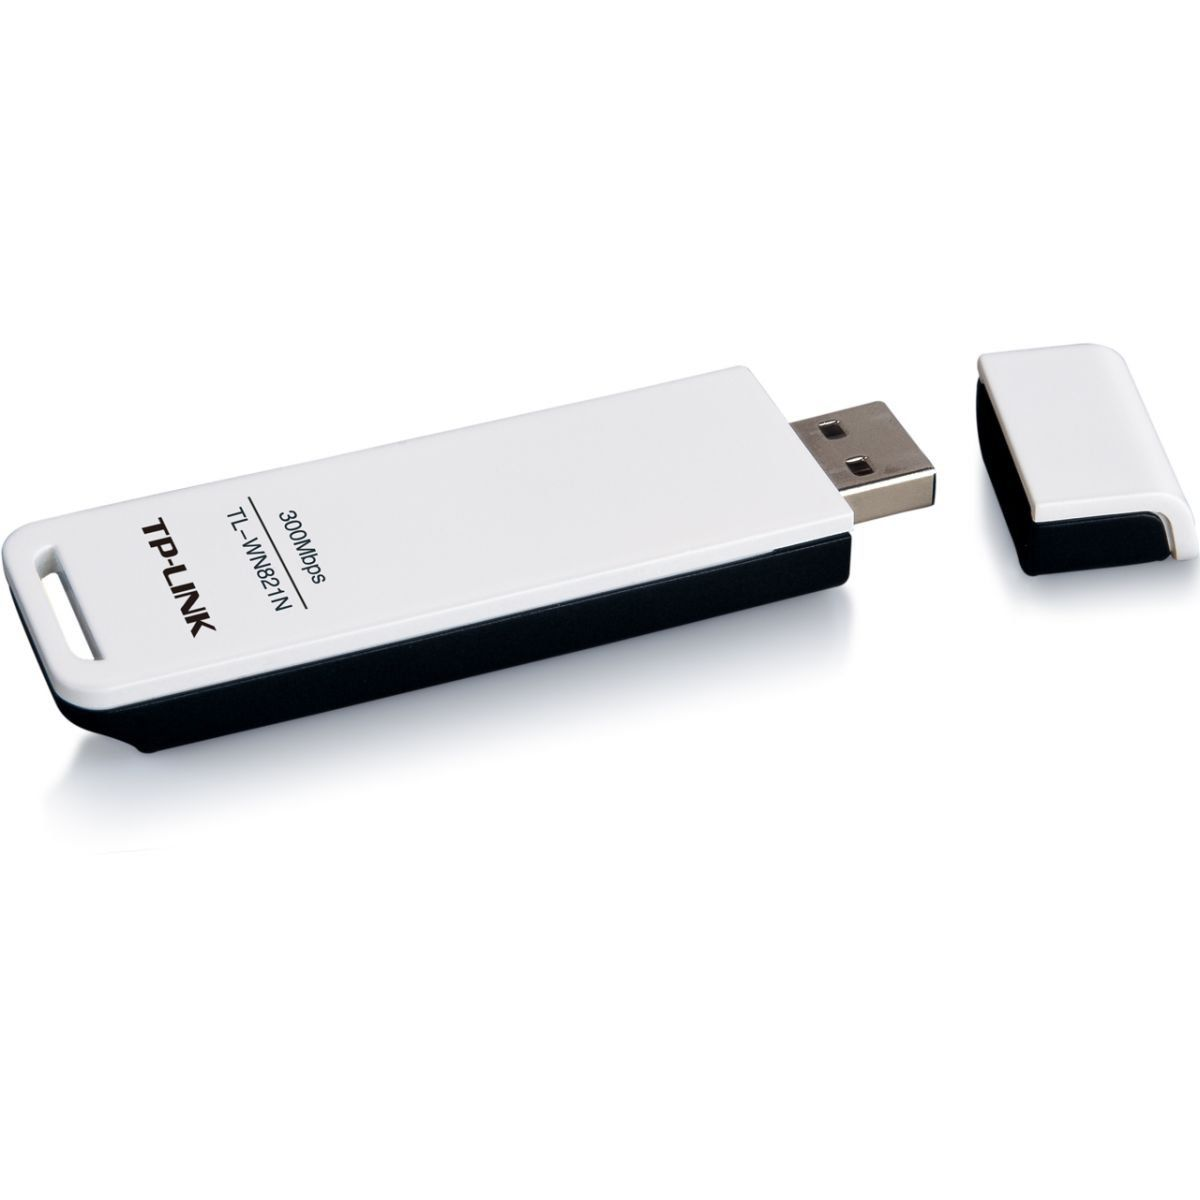 Wireless Adaptador Usb Tp-Link Tl-Wn821n 300mbps Atheros